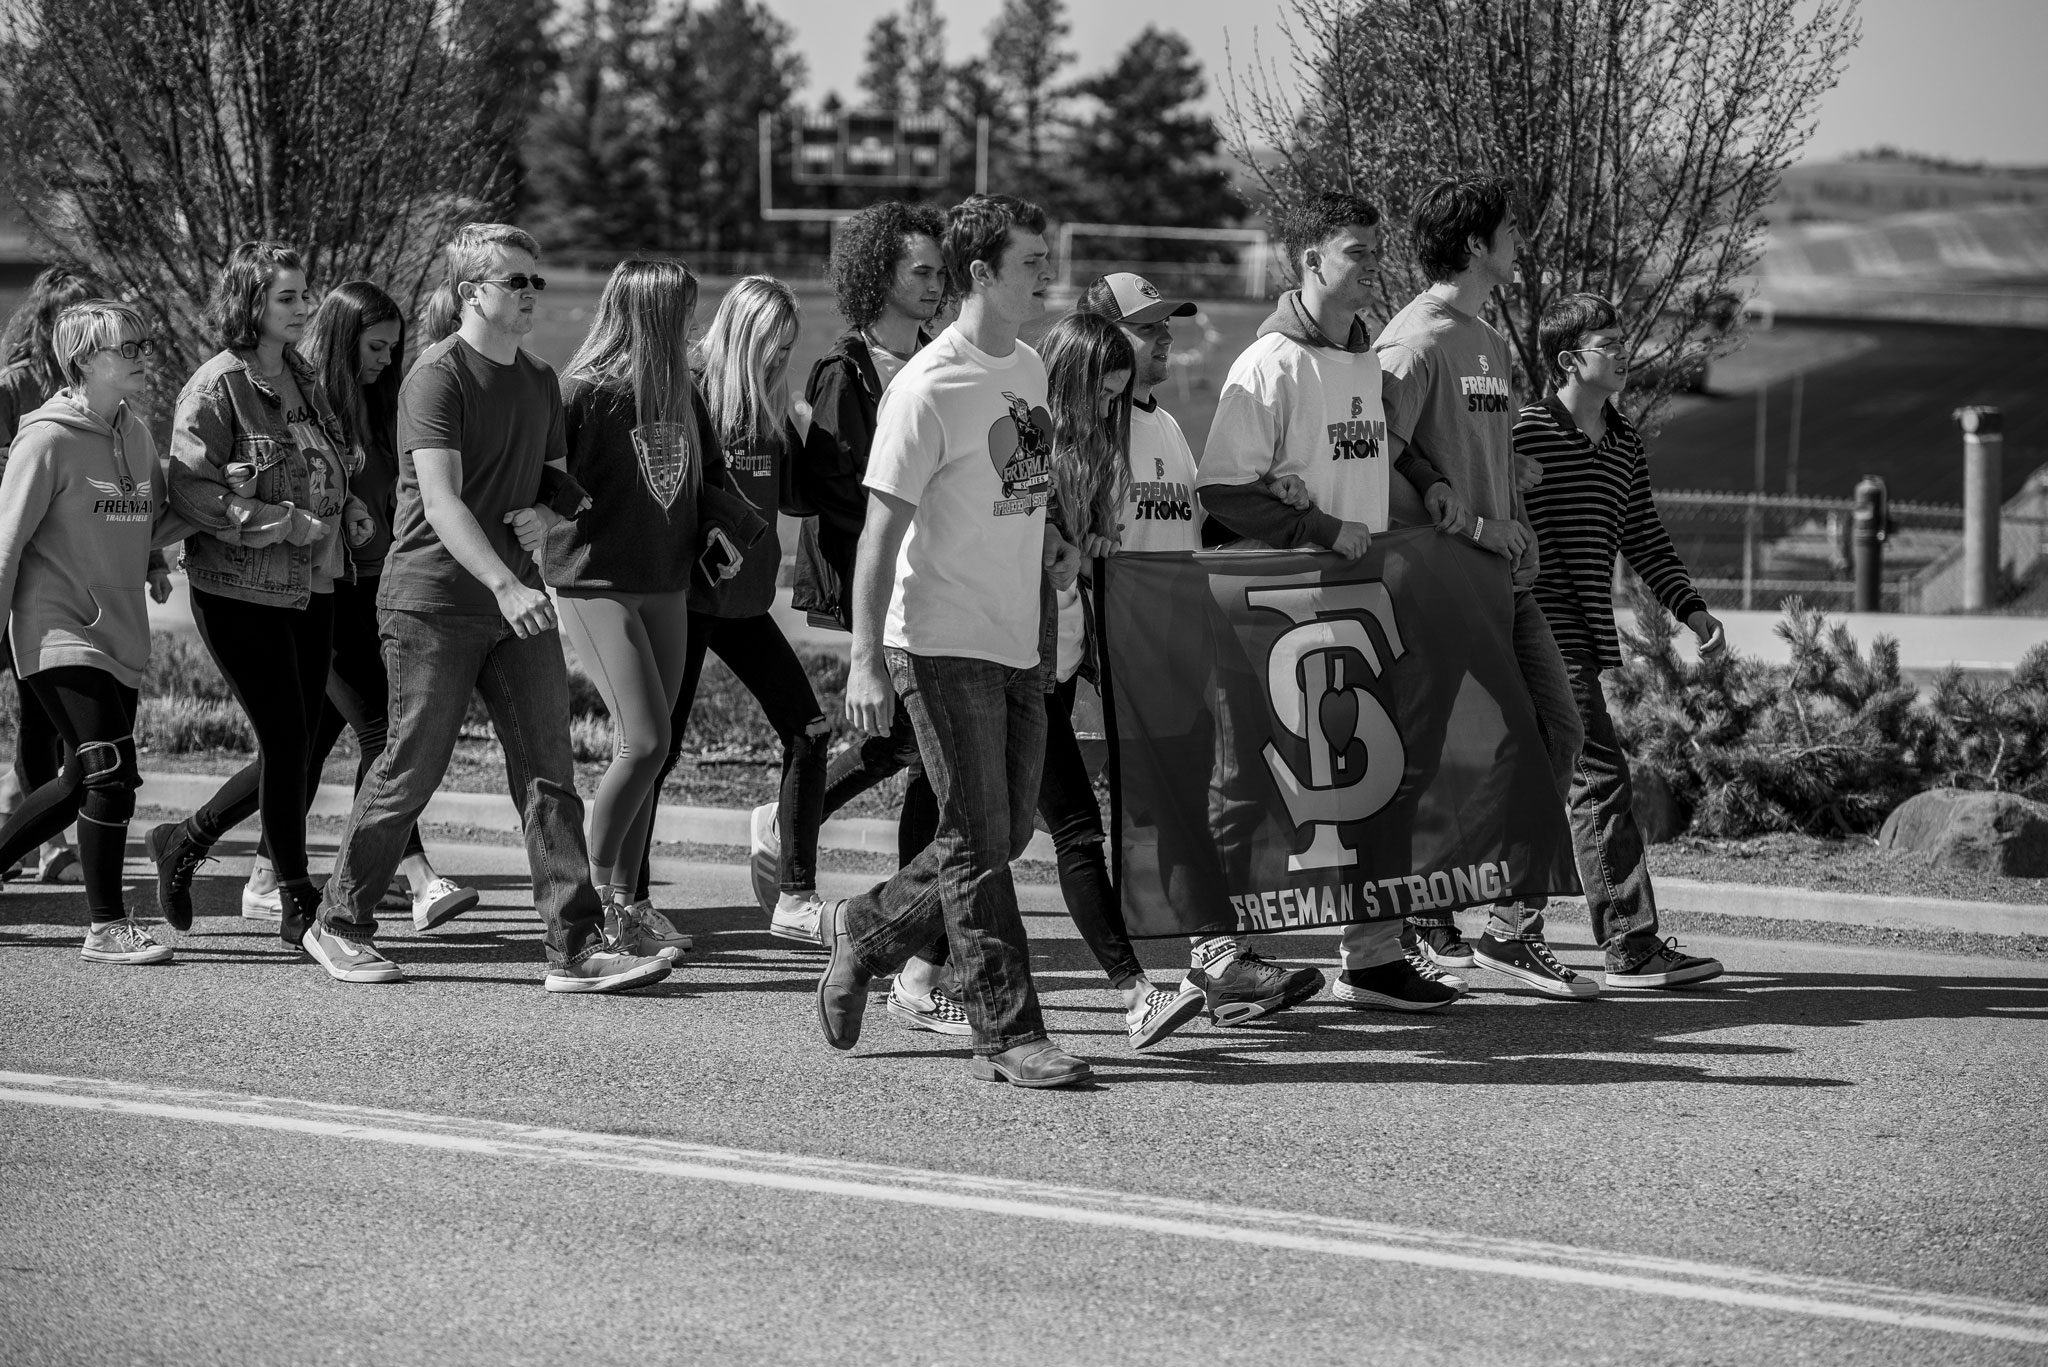 Freeman High School Walkout walking back to class